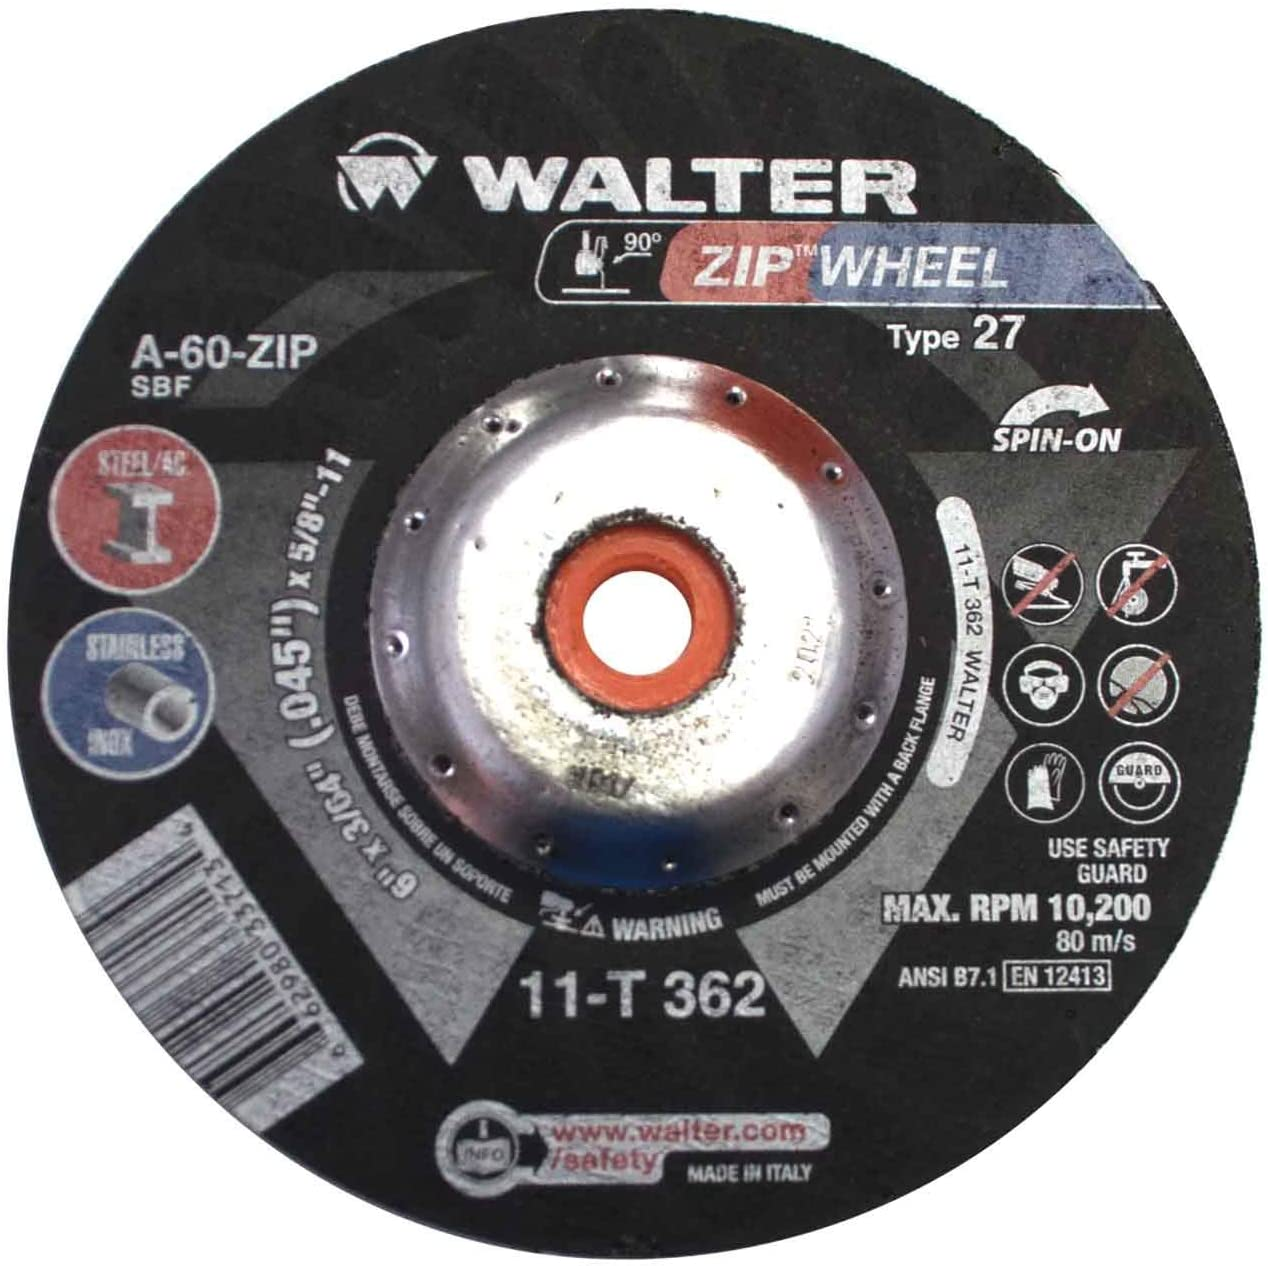 Walter 11T362 6x3//64x5//8-11 Spin-On Zip Wheel Type 27 A60 Grit 25 pack